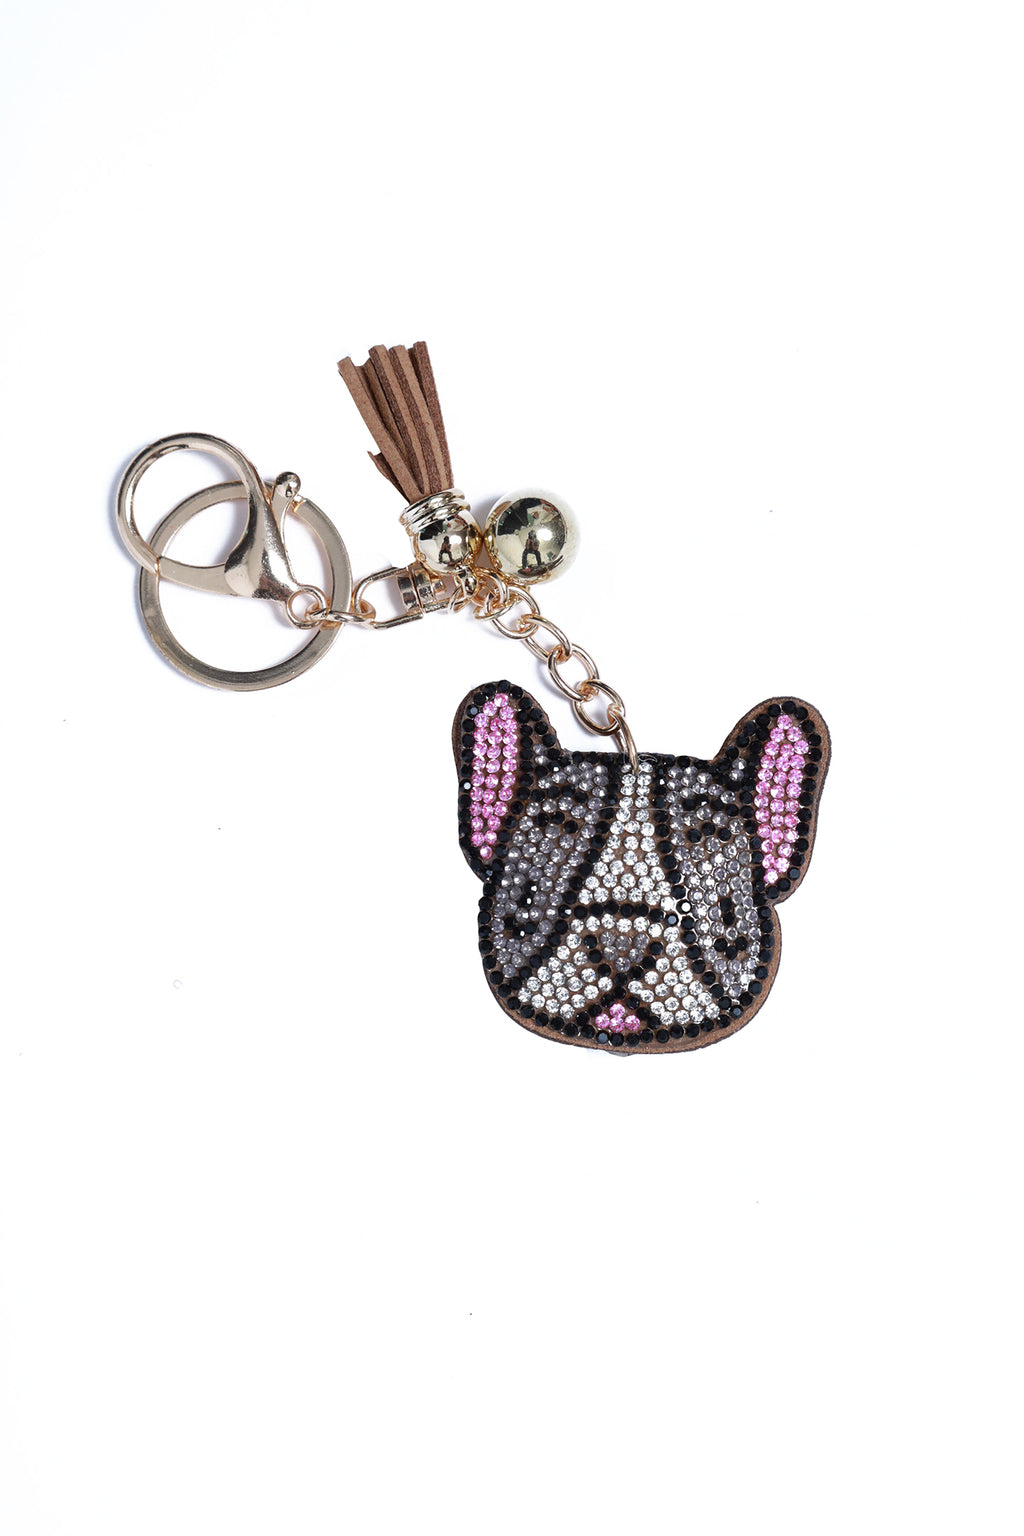 Rhinestone Key Chain Frenchie